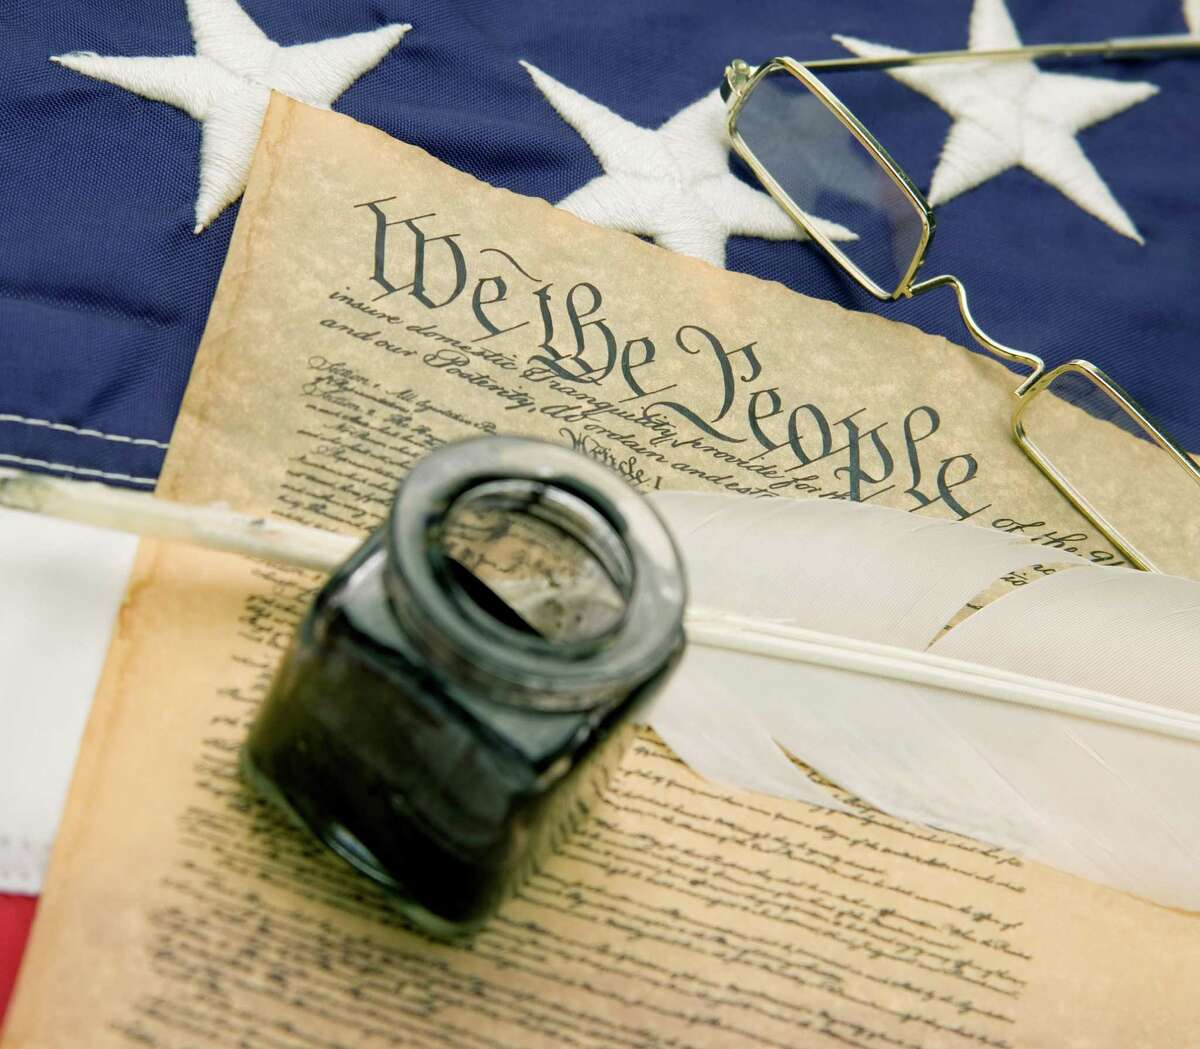 United States Constitution, 13-star American flag, inkwell and quill pen